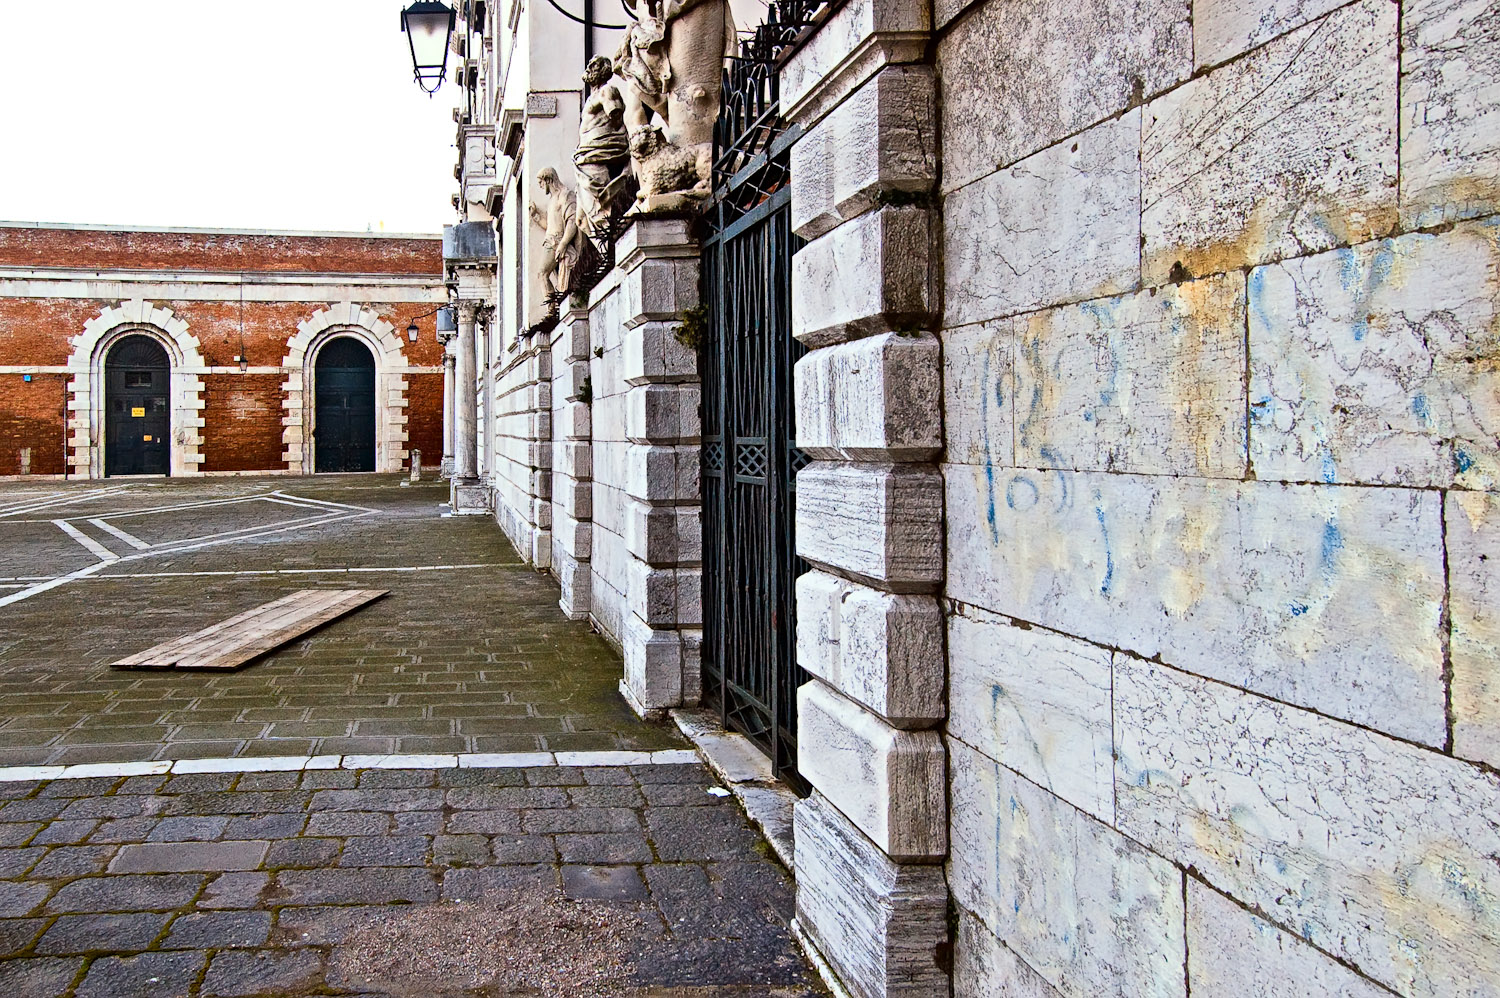 Venetian Wall and Boards